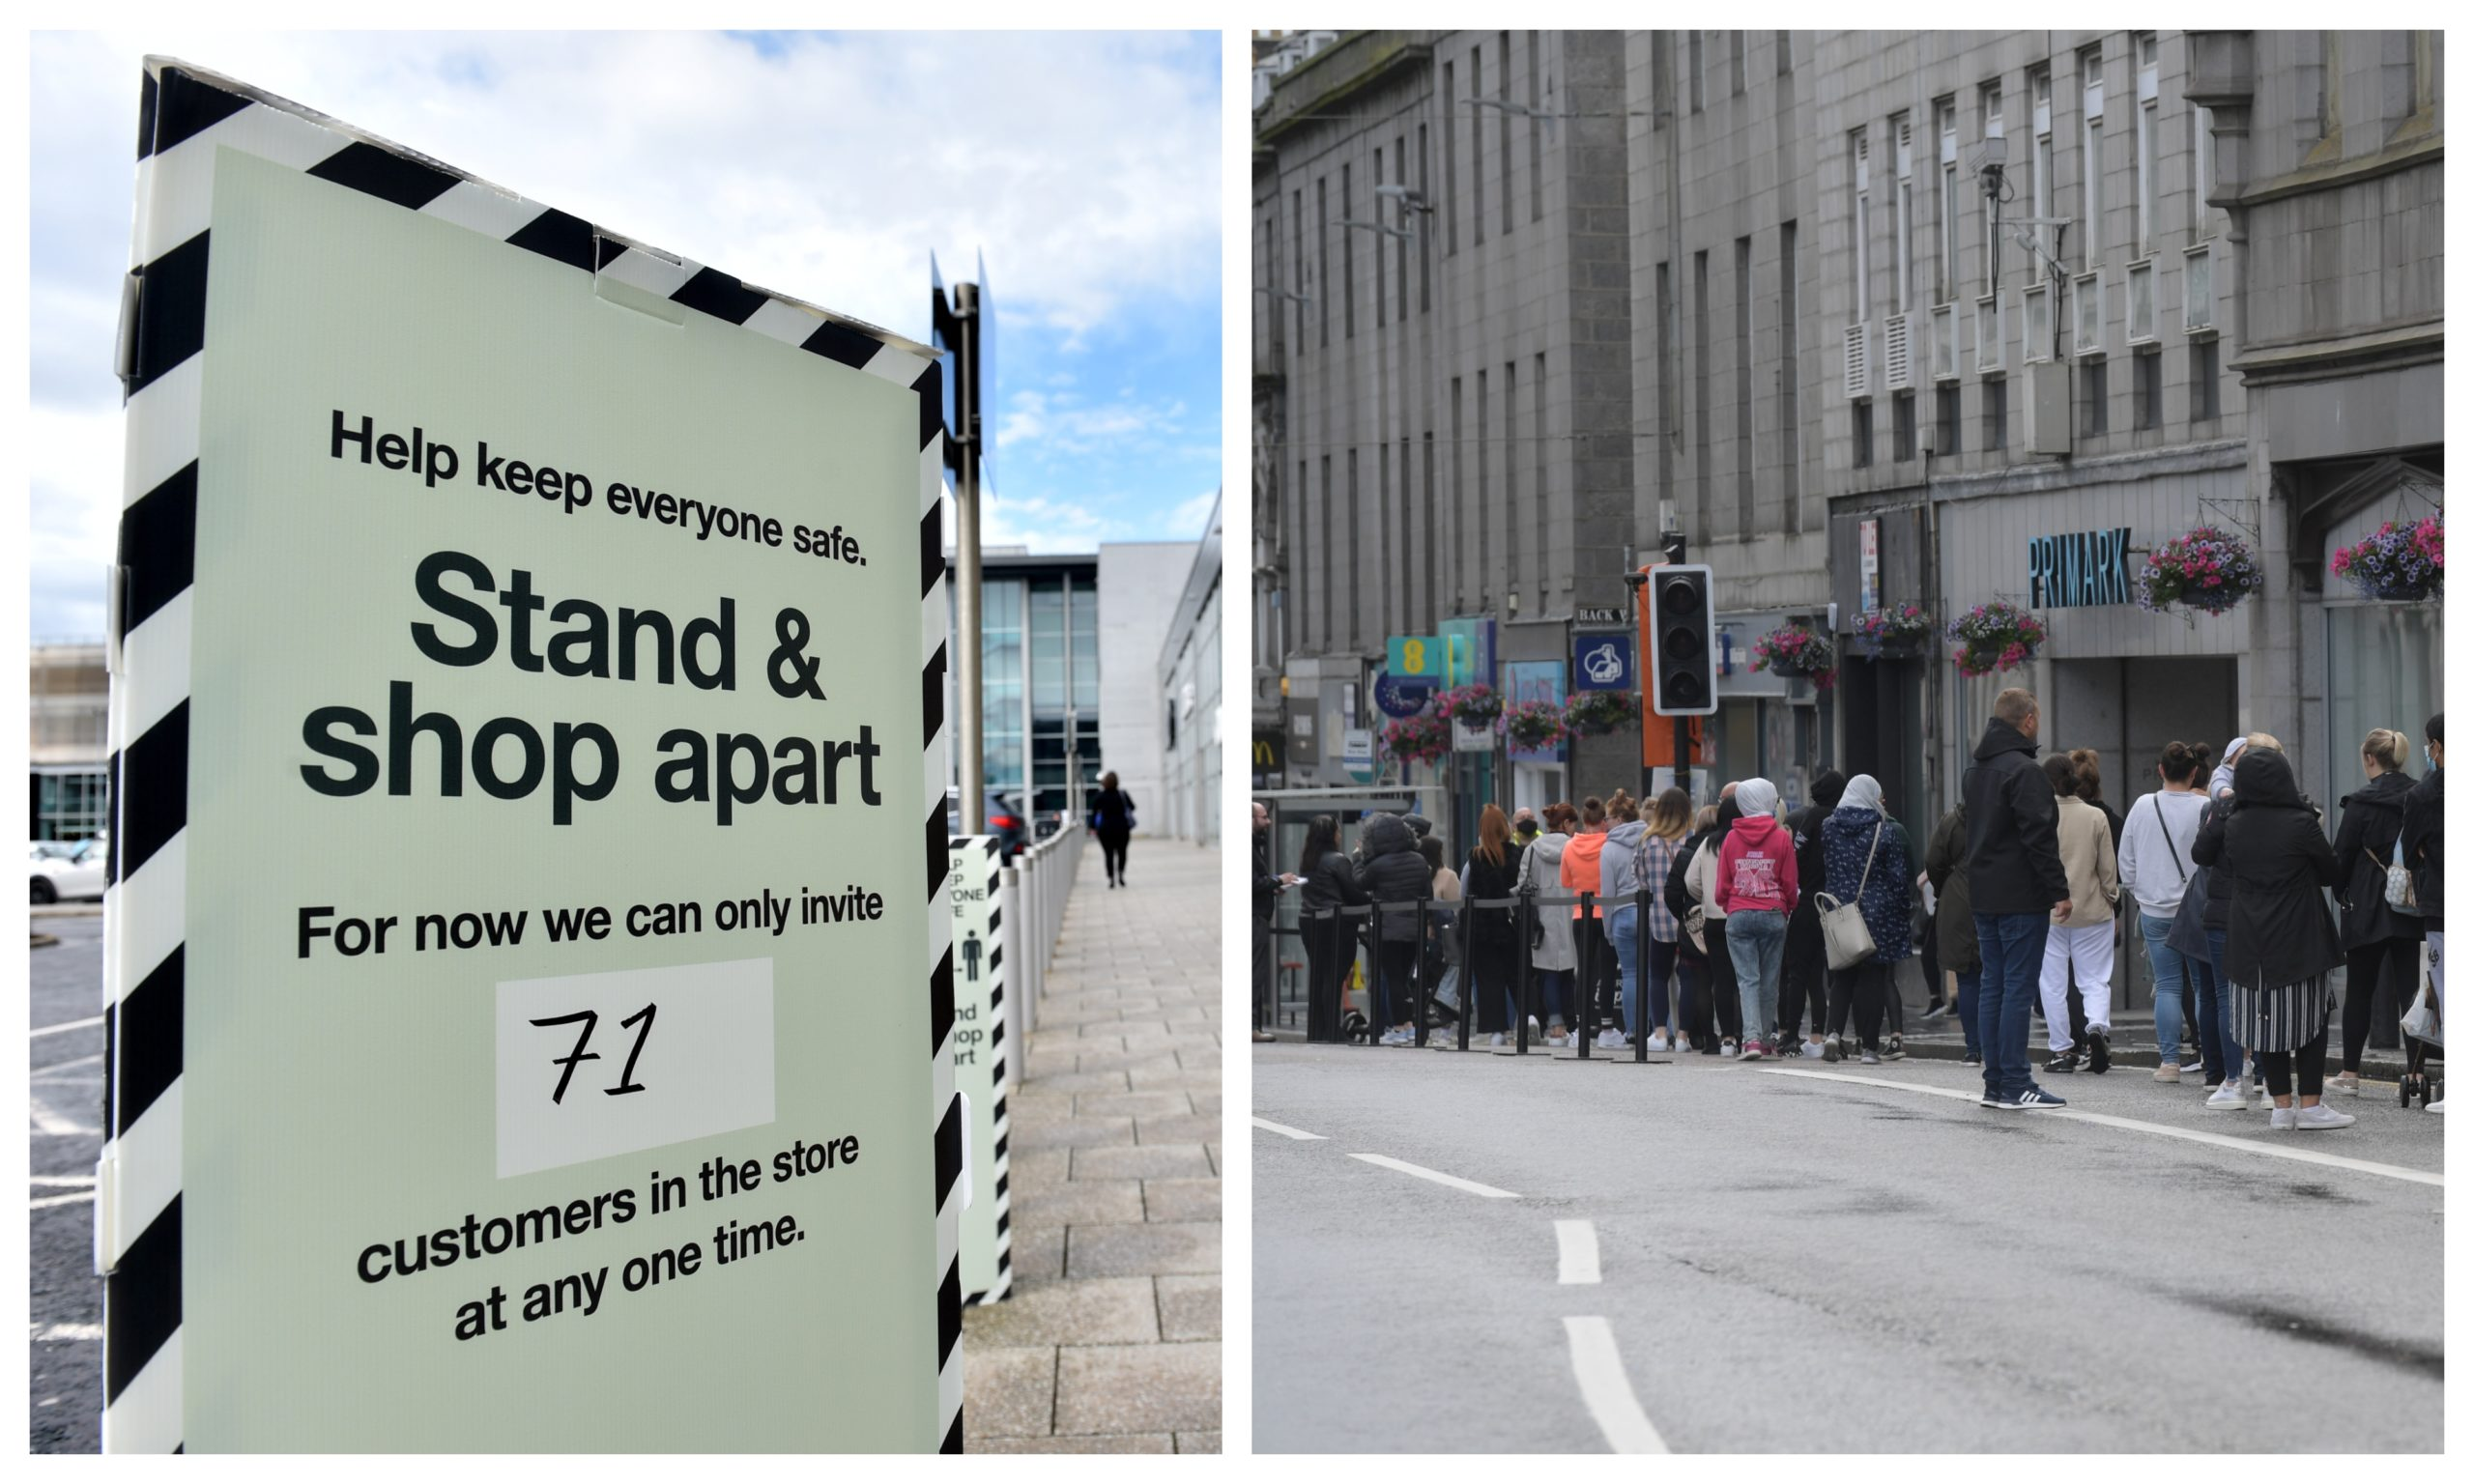 A sign outside Union Square (left) and shoppers queuing on Union Street, Aberdeen (right). Pictures by Darrell Benns and Kath Flannery